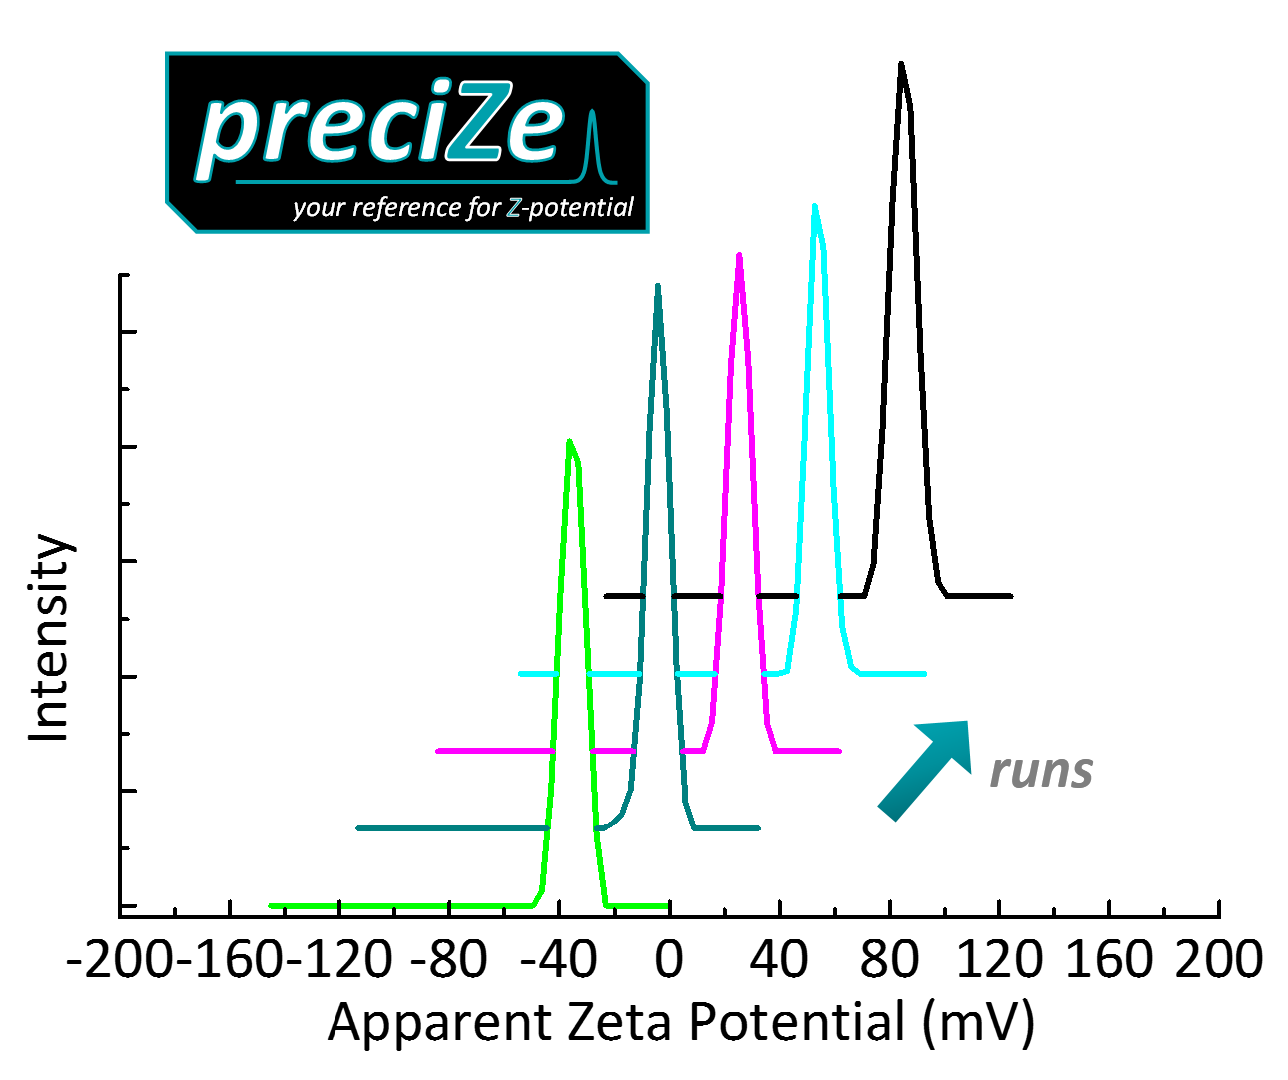 preciZe – your reference for Zeta Potential